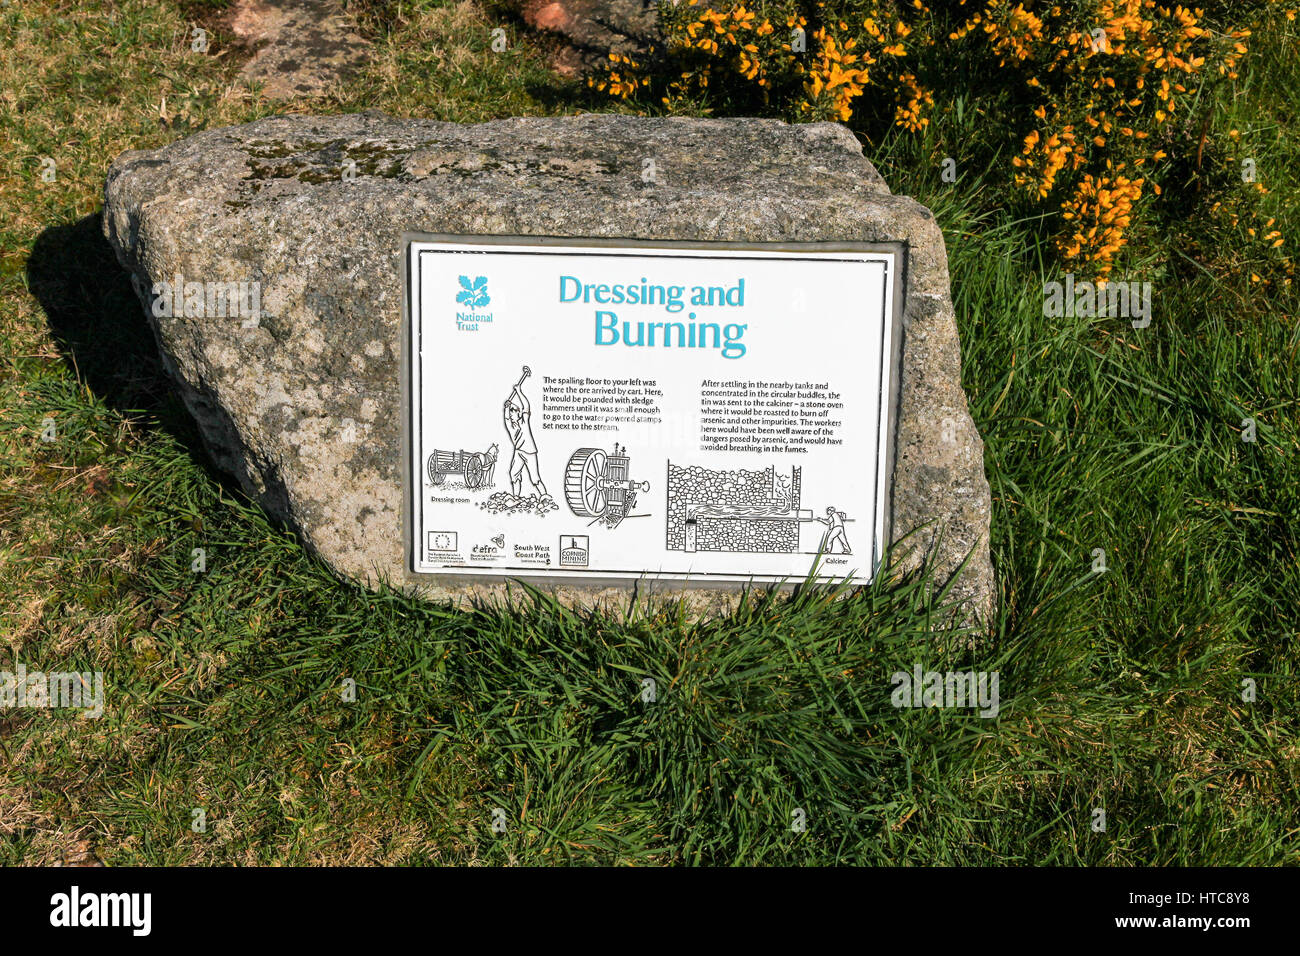 A sign at Porthmeor Tin stamps with its well-preserved buddle system outlining the dressing and burning system to - Stock Image